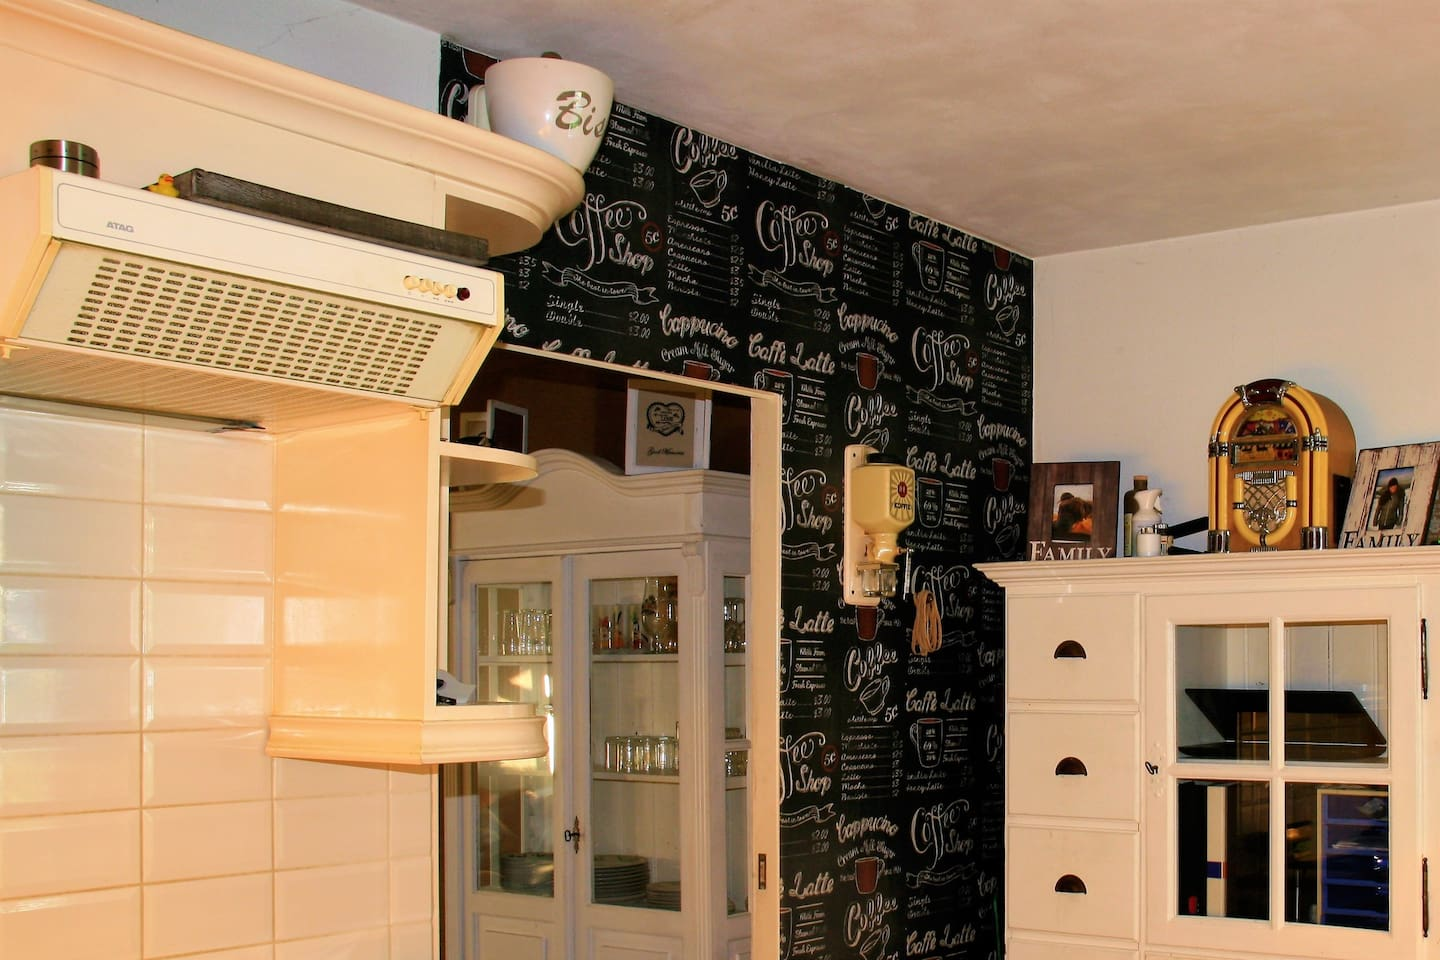 Nice kitchen with refrigerator dicewasher, cooking facilities and microwave. Plates and cutlery are also included.